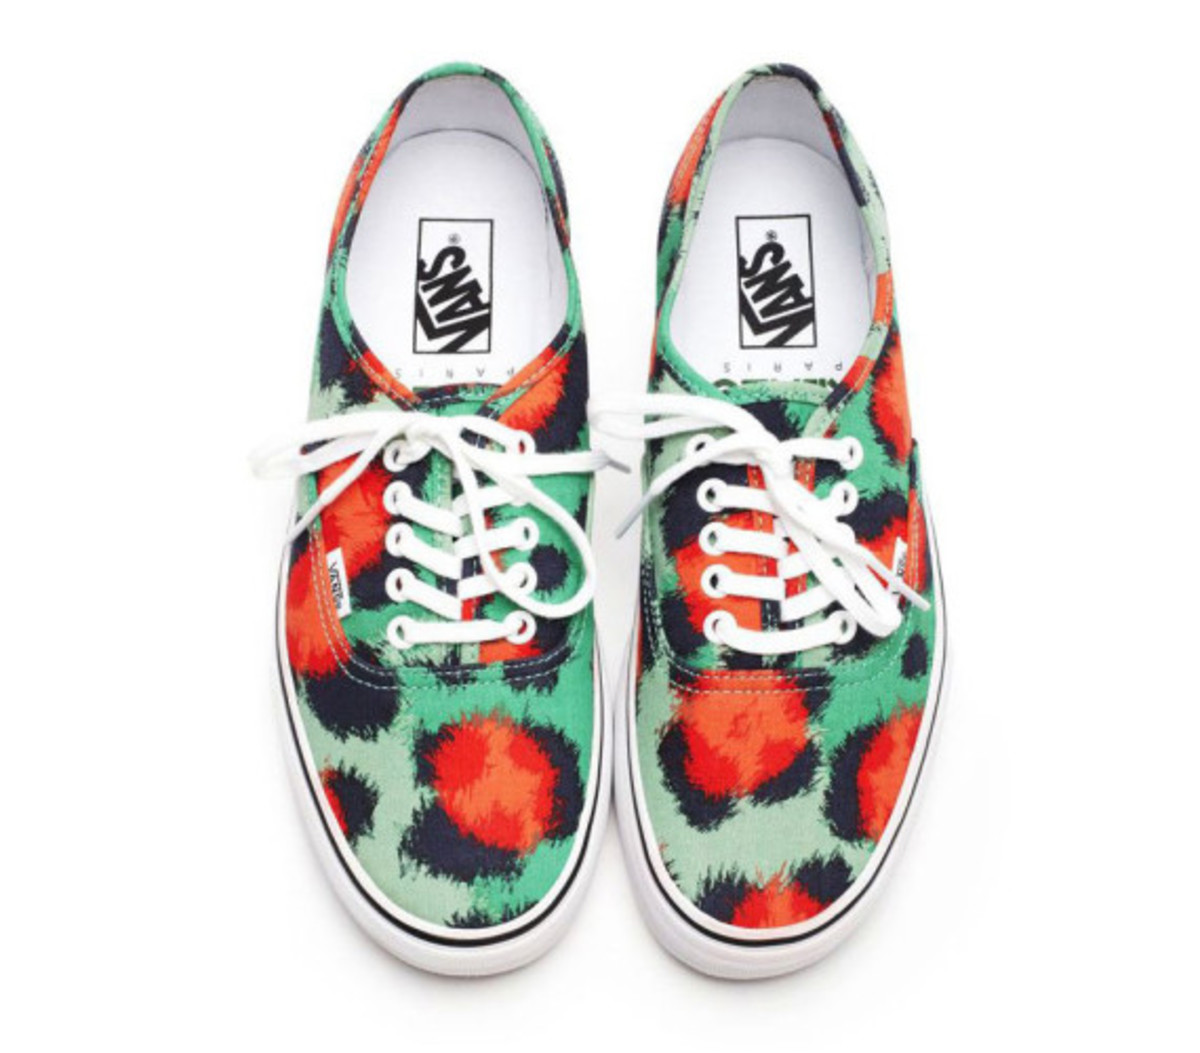 kenzo-vans-spring-summer-2013-capsule-collection-03